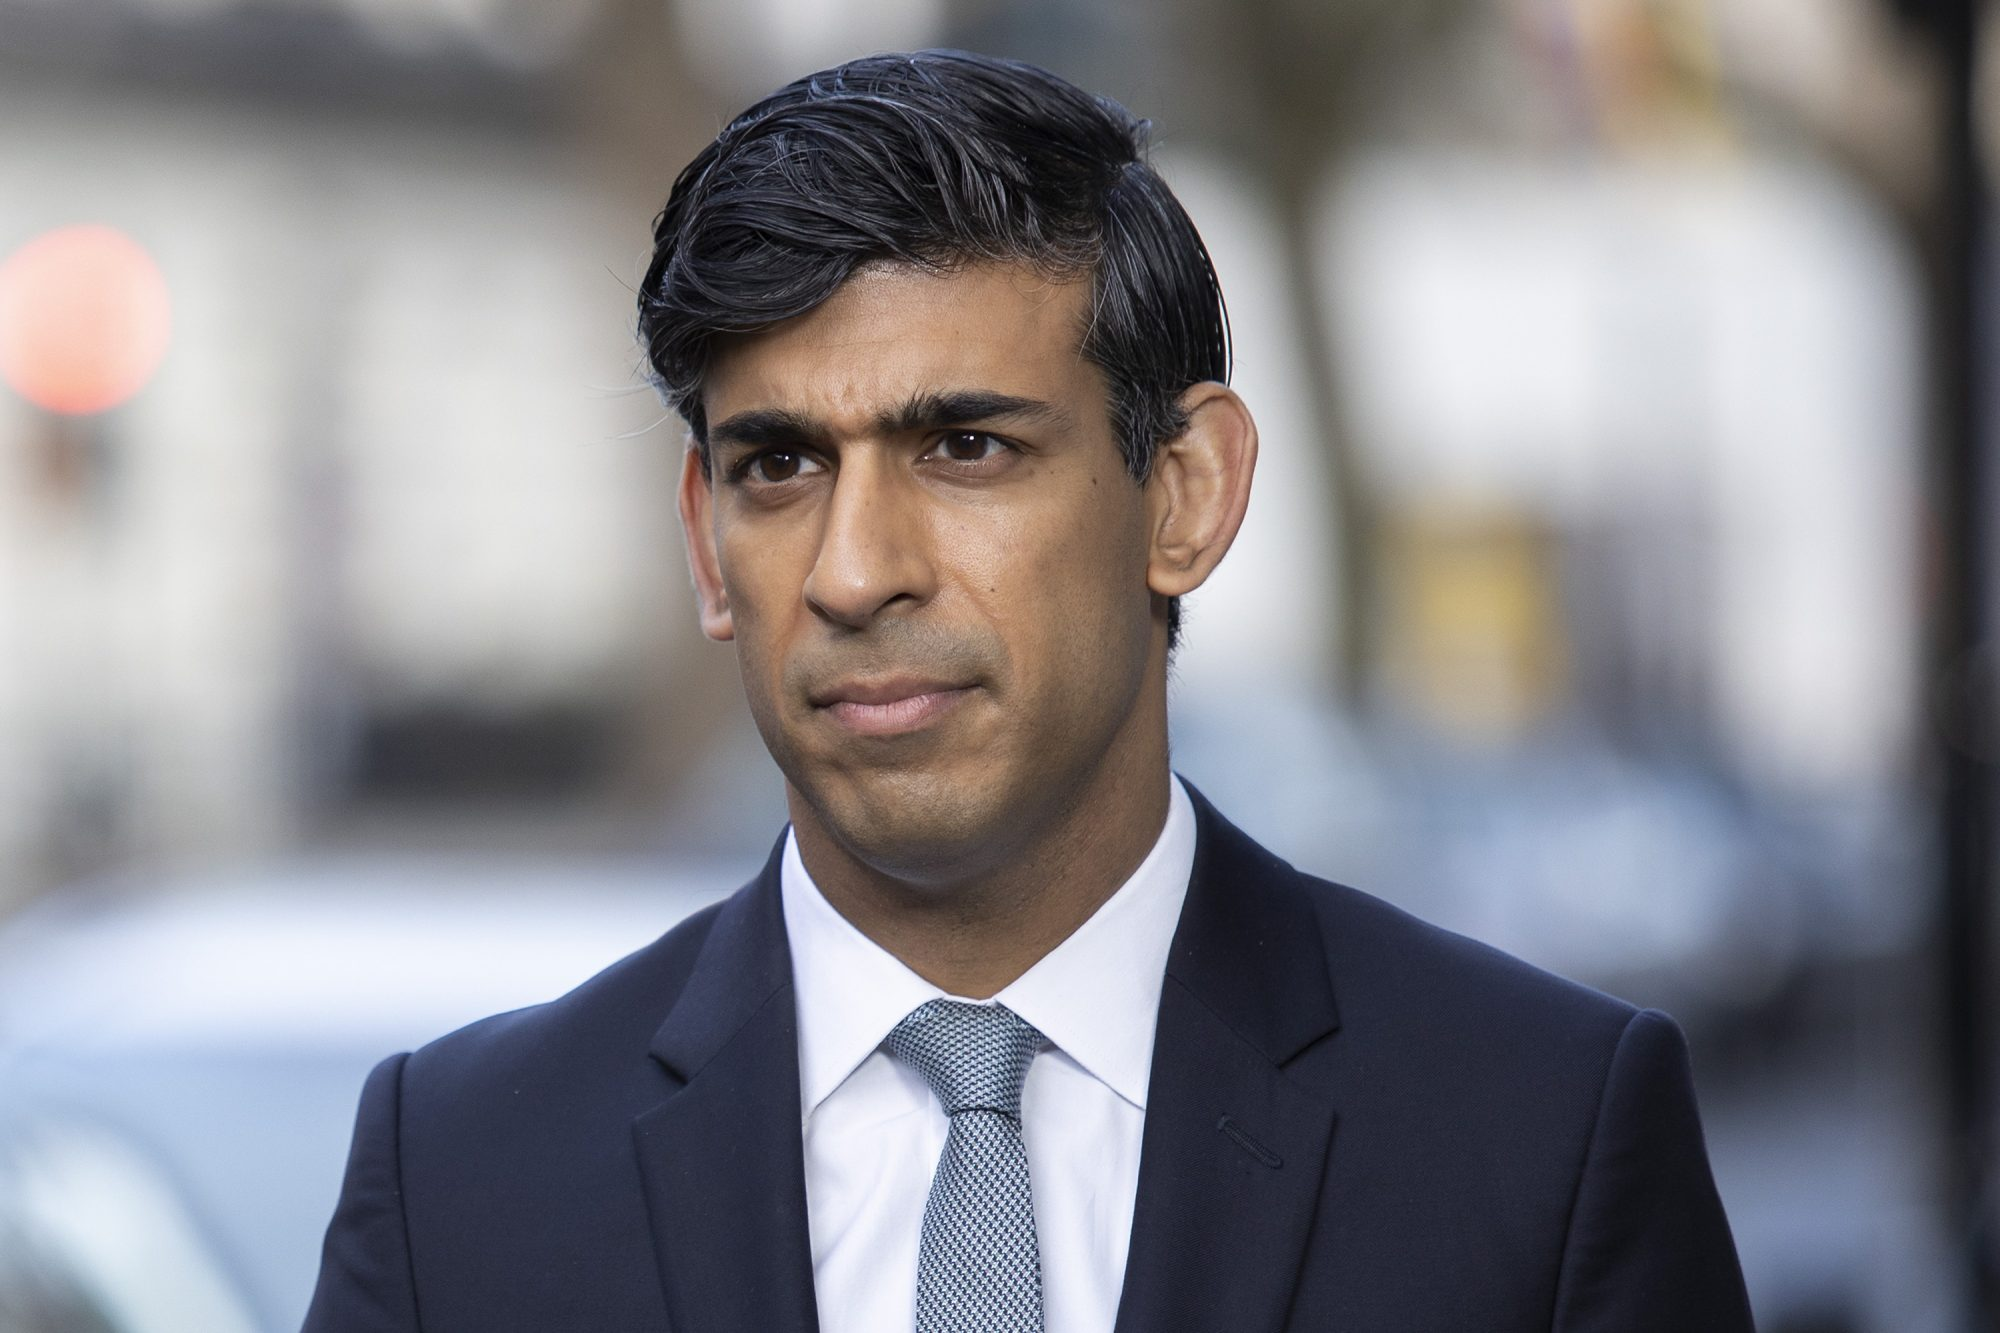 Chancellor Rishi Sunak says UK economy to face 'enormous strains' following lockdown - channel 4